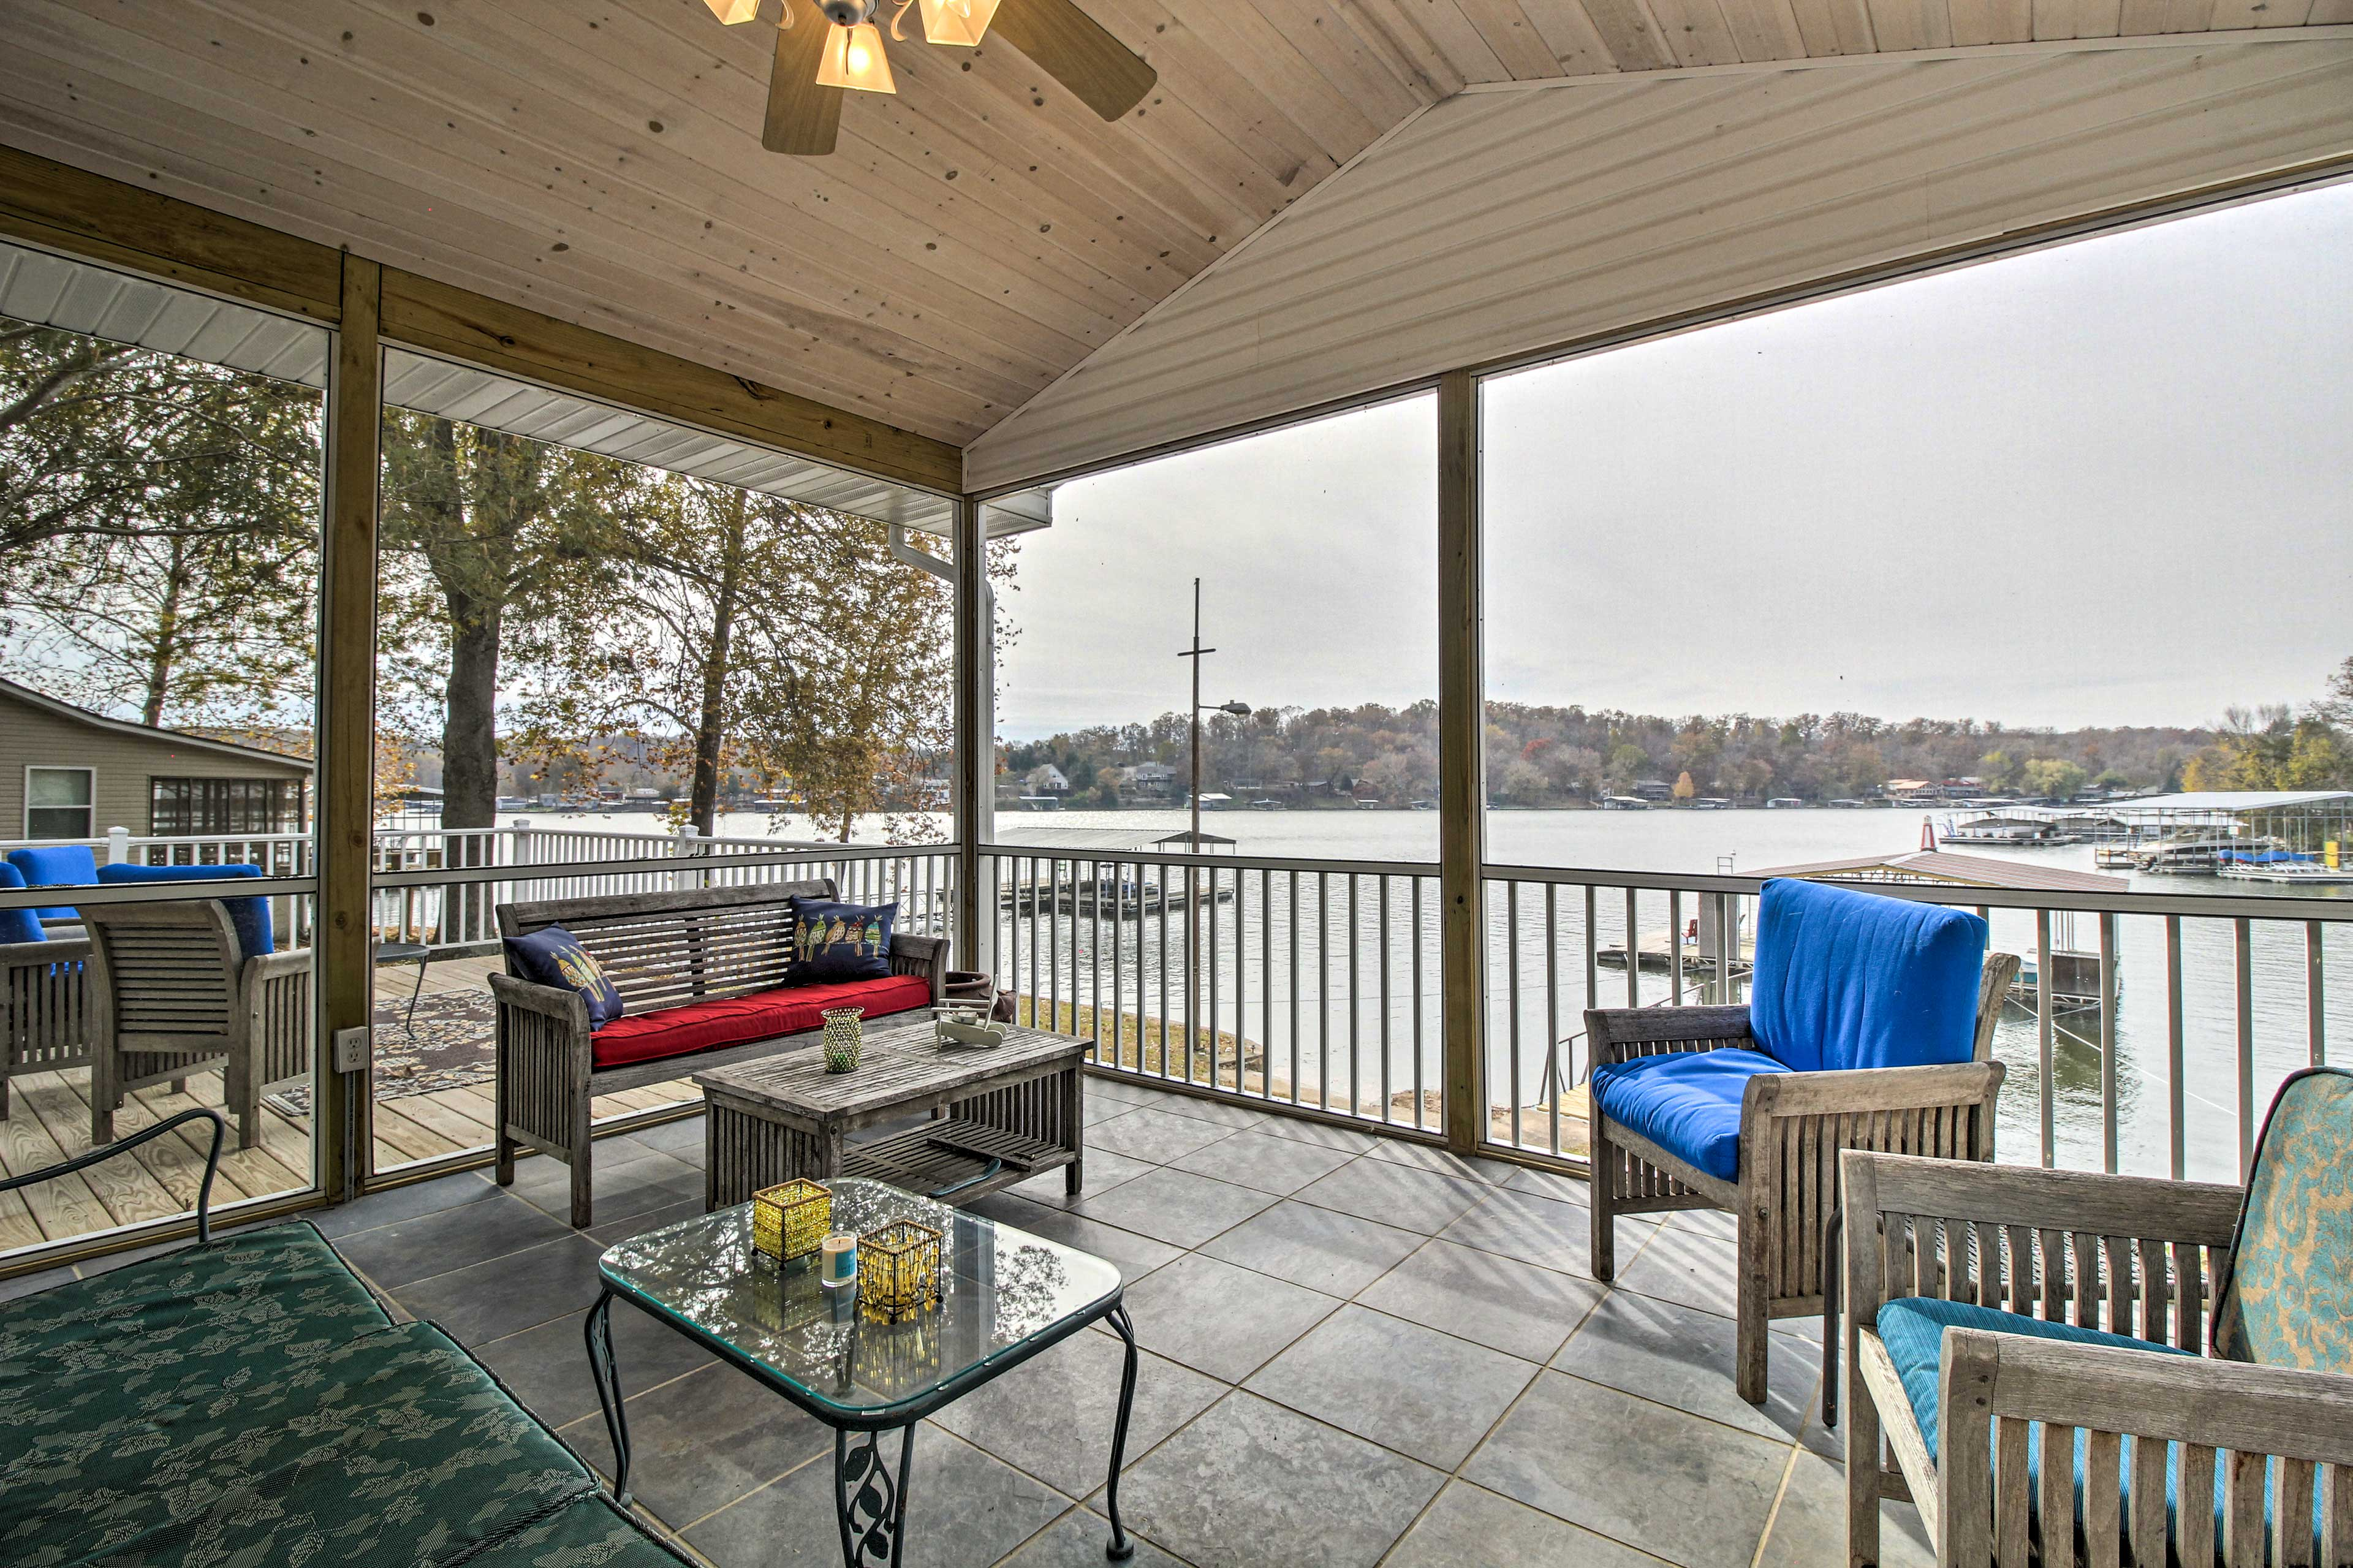 Admire the lake from this screened-in deck area.